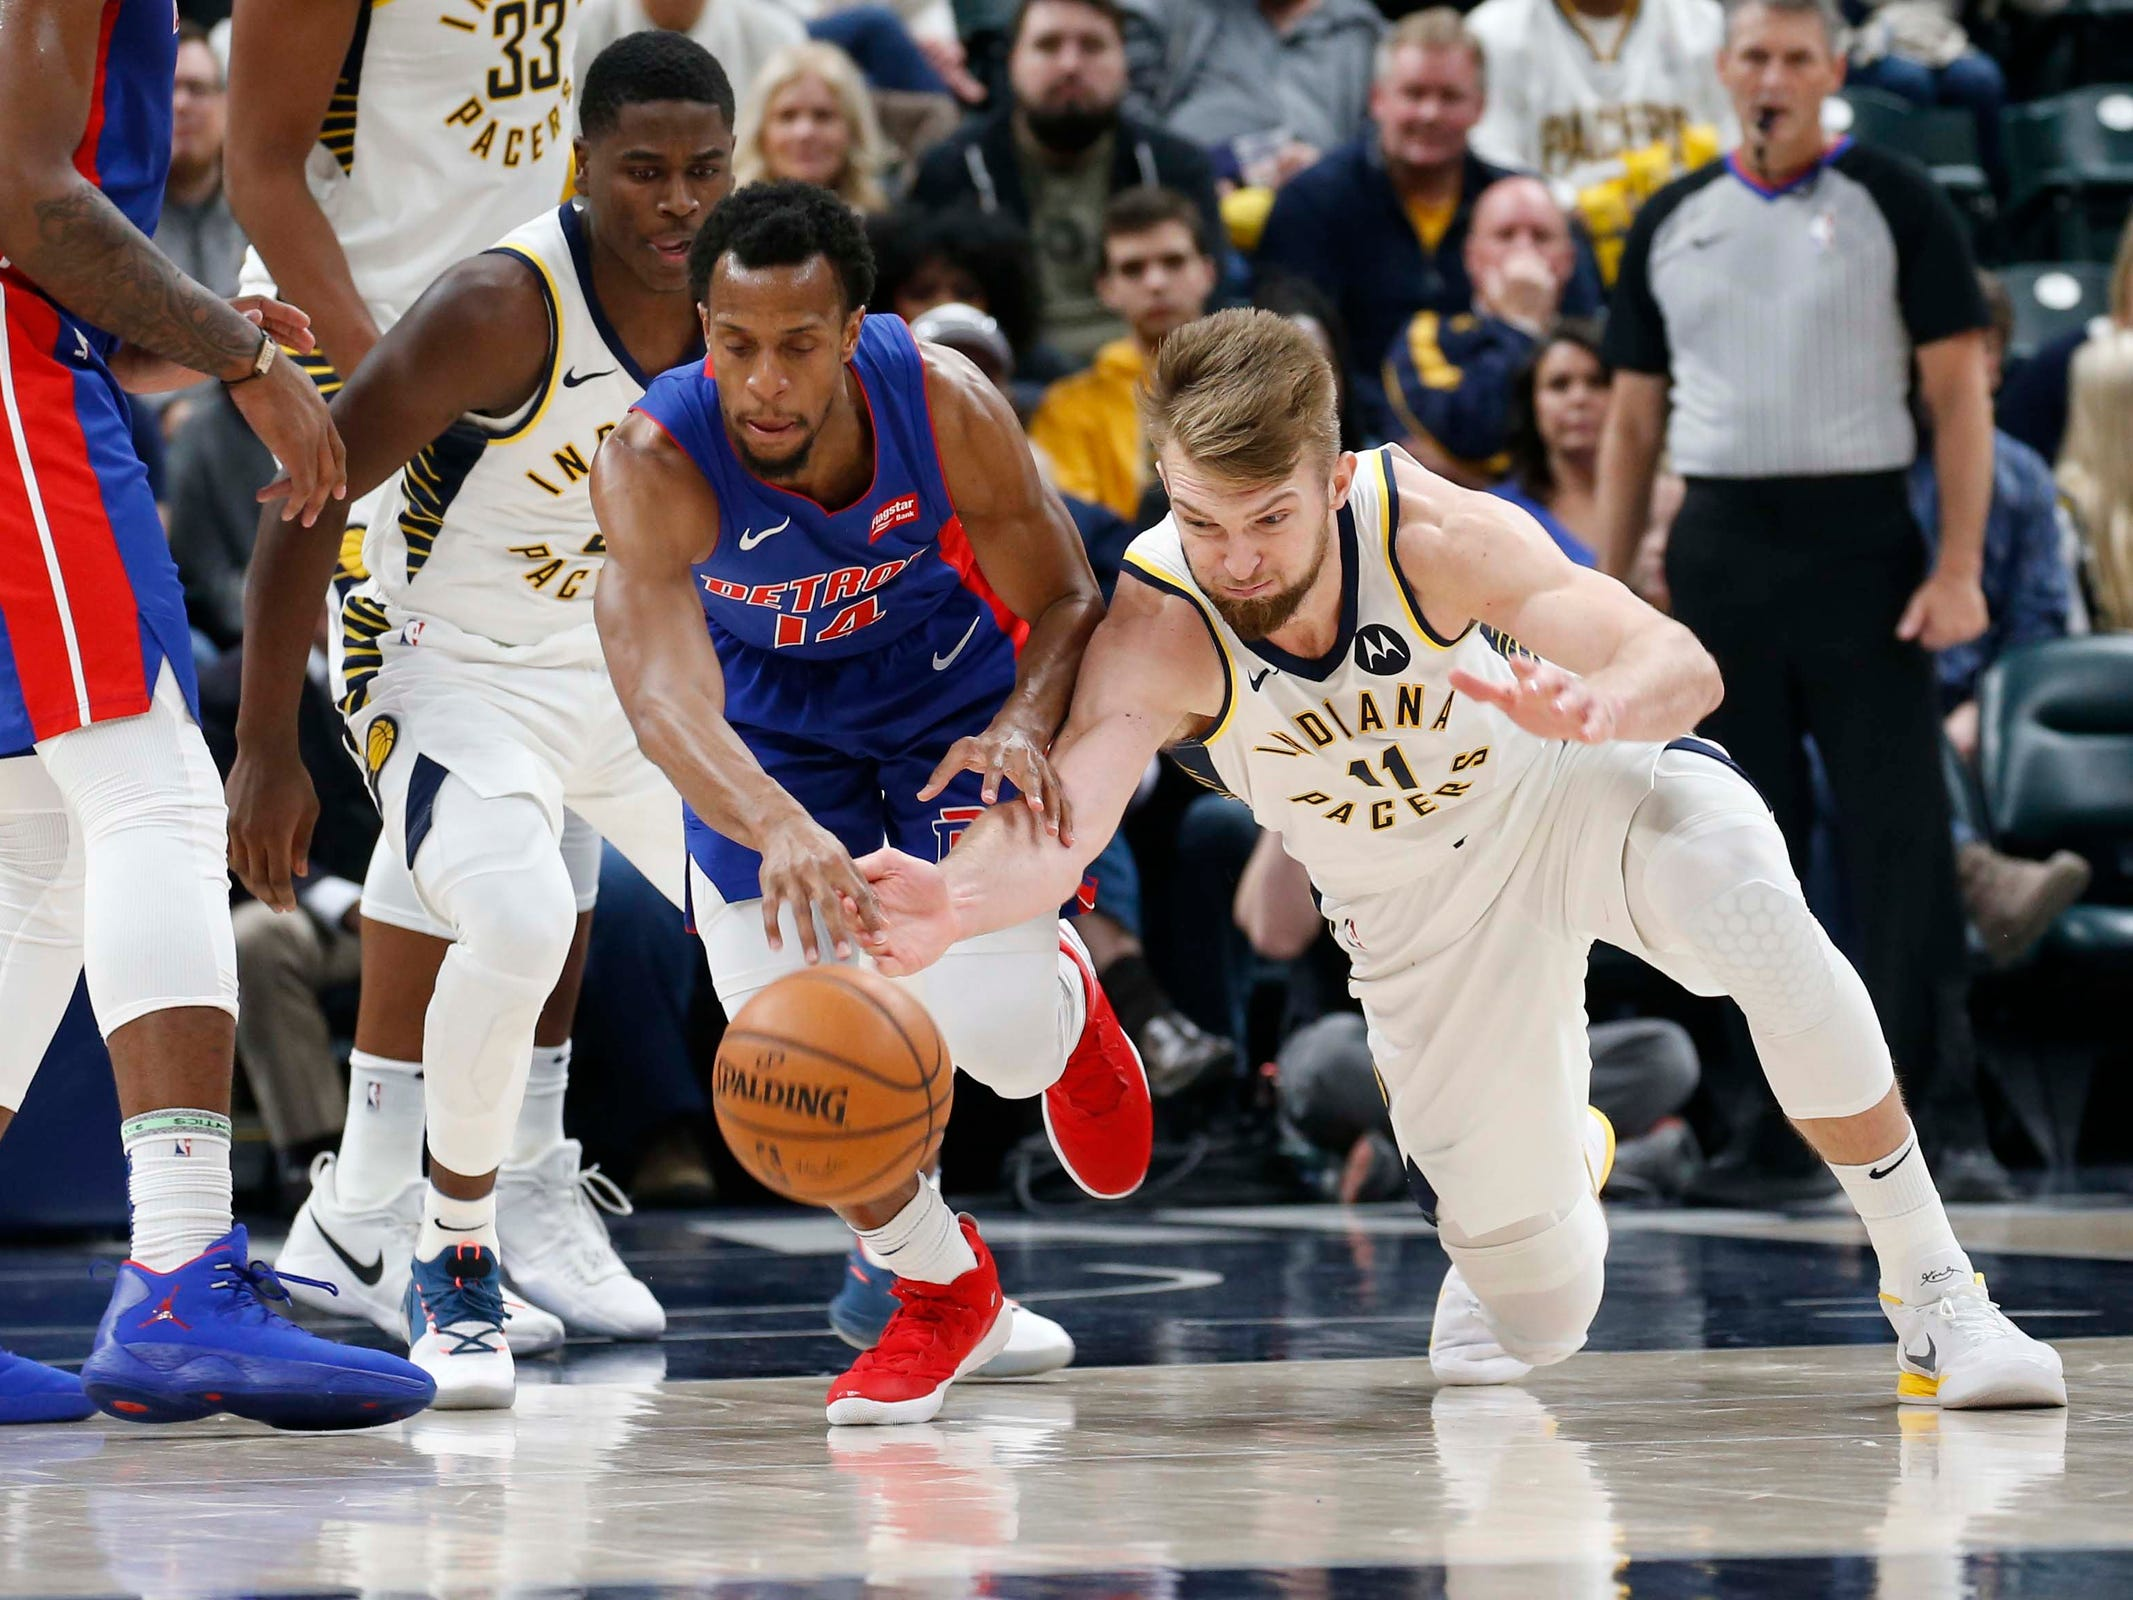 Indiana Pacers forward Domantas Sabonis scrambles for a loose ball against Detroit Pistons guard Ish Smith during the third quarter at Bankers Life Fieldhouse, April 1, 2019.